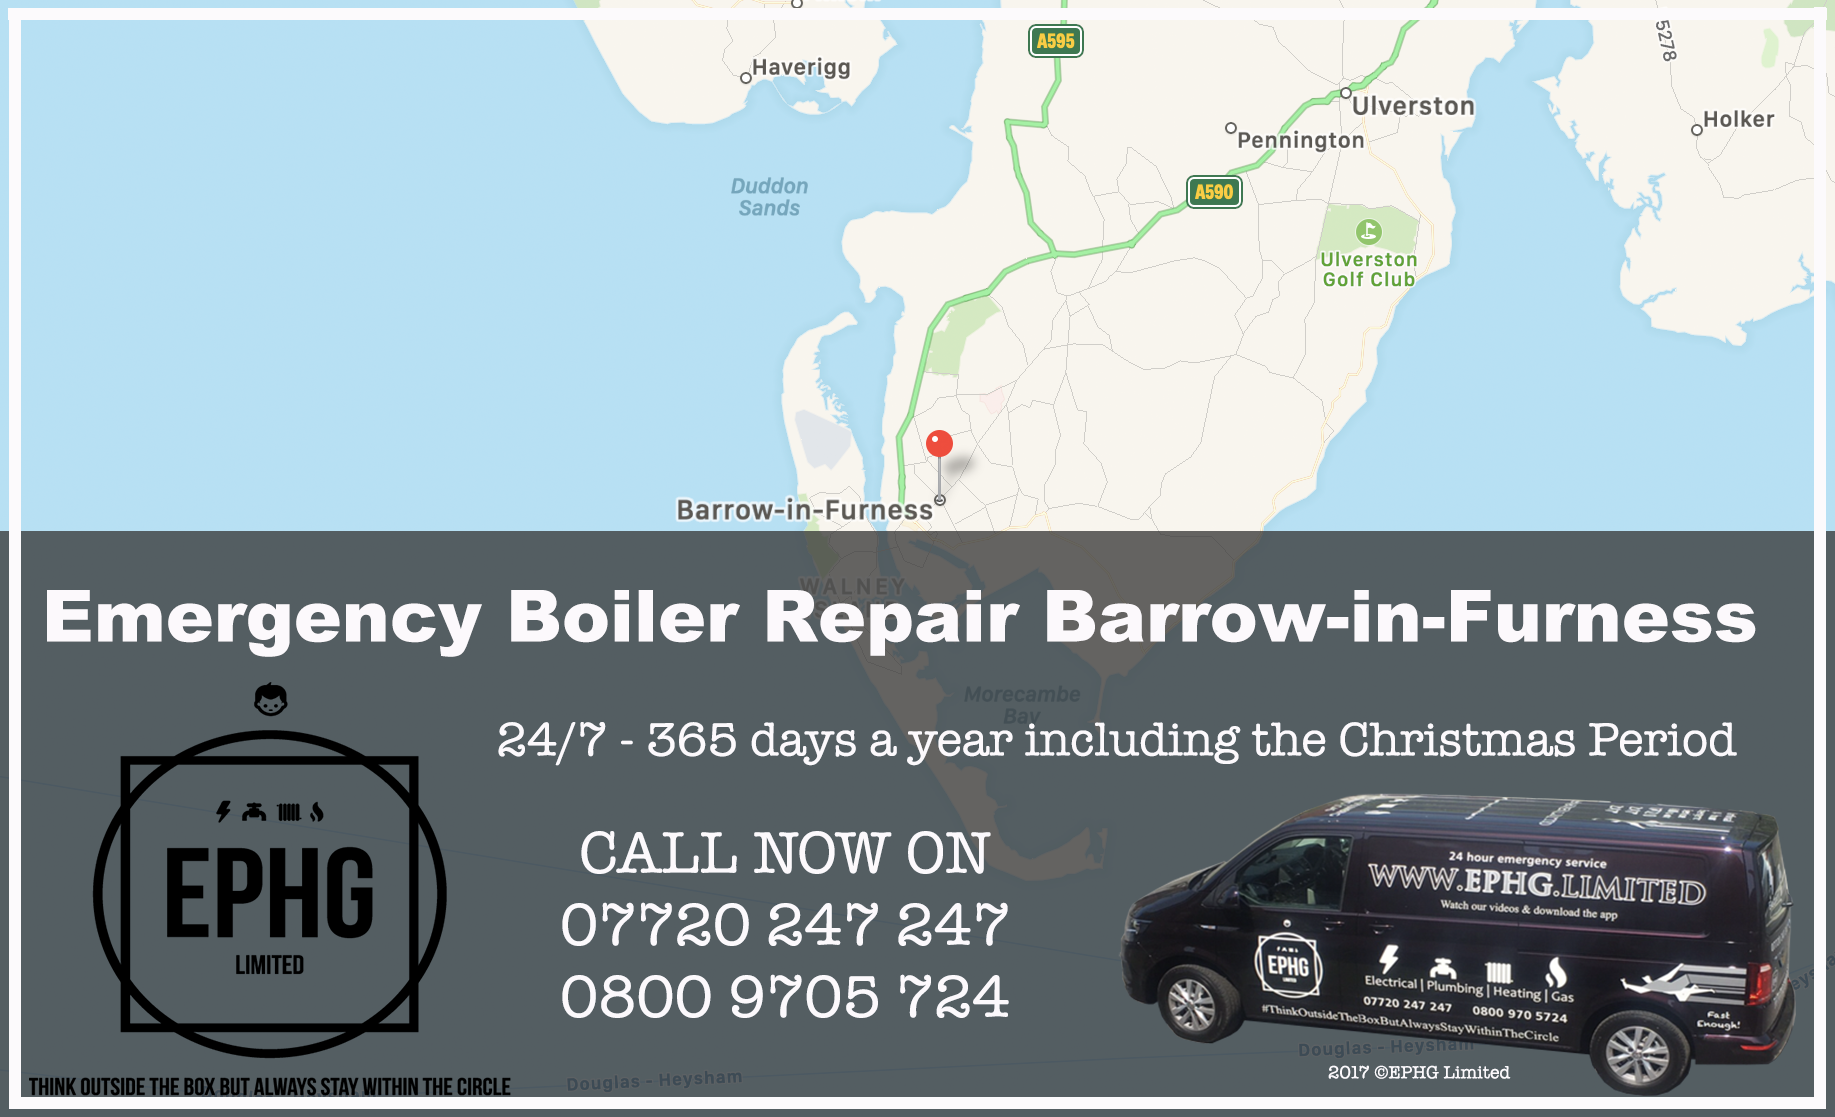 24 Hour Emergency Boiler Repair Barrow-in-Furness